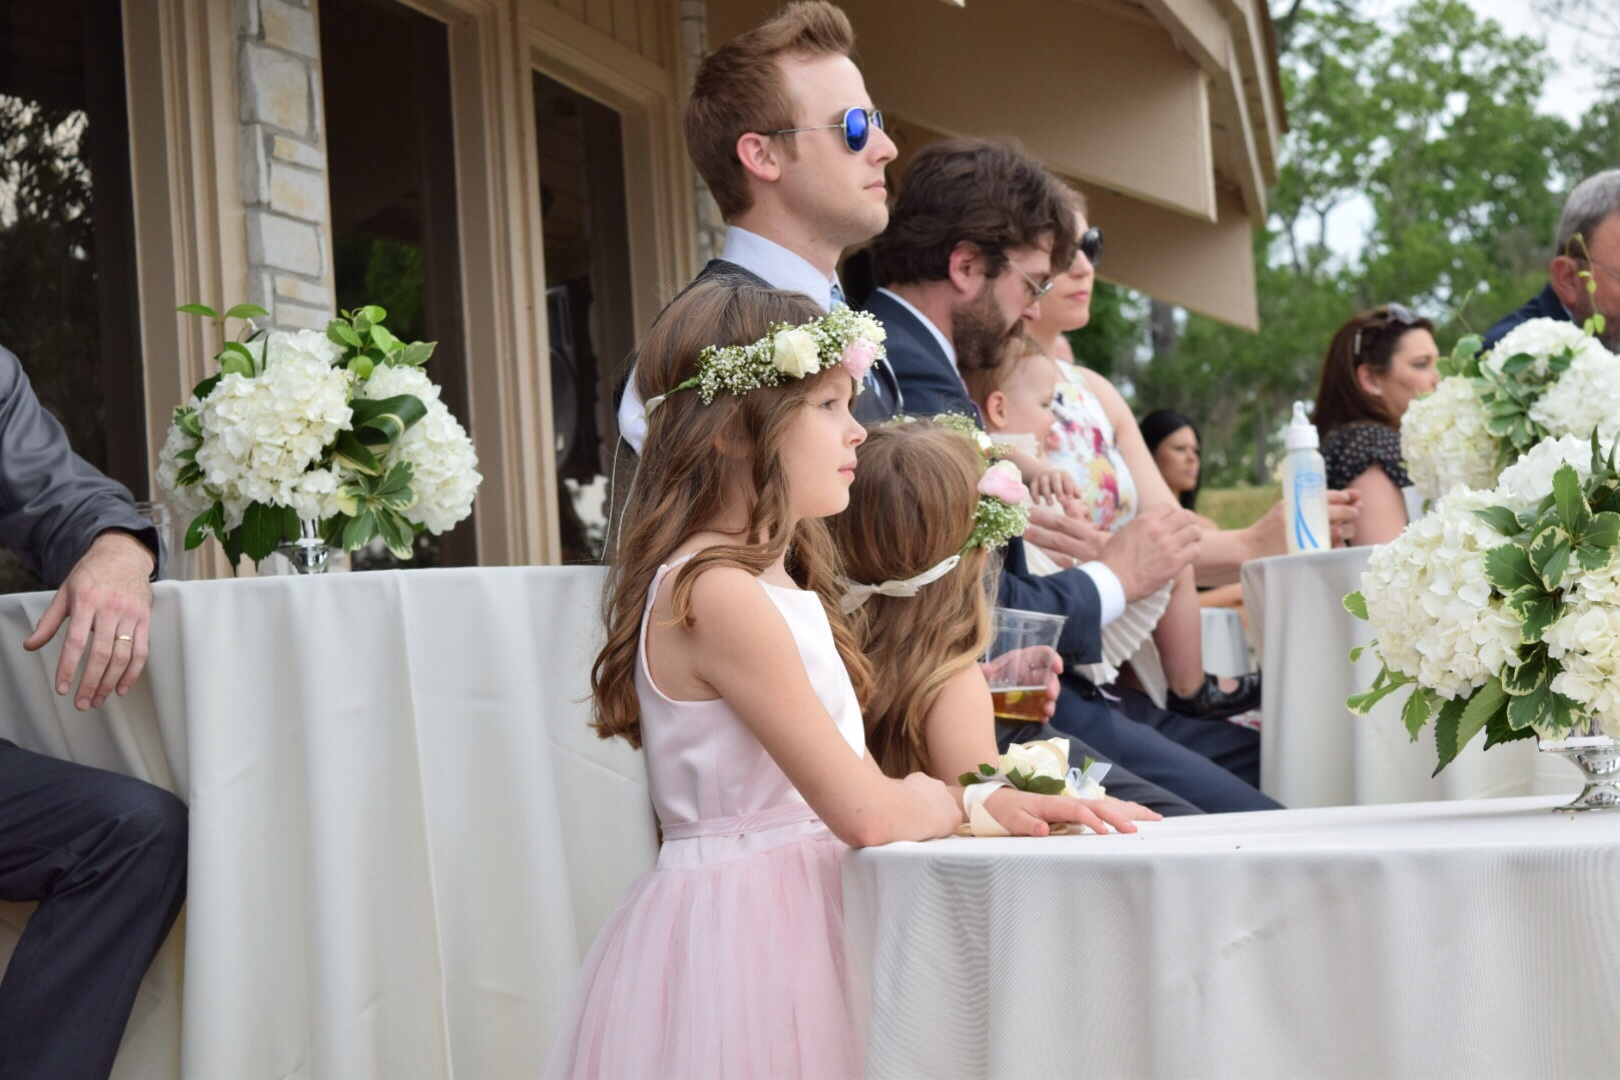 These cuties! I wish you could have seen the excitement on their faces. They loved wearing their floral crowns and were so enthusiastic about the entire wedding. It was so adorable.